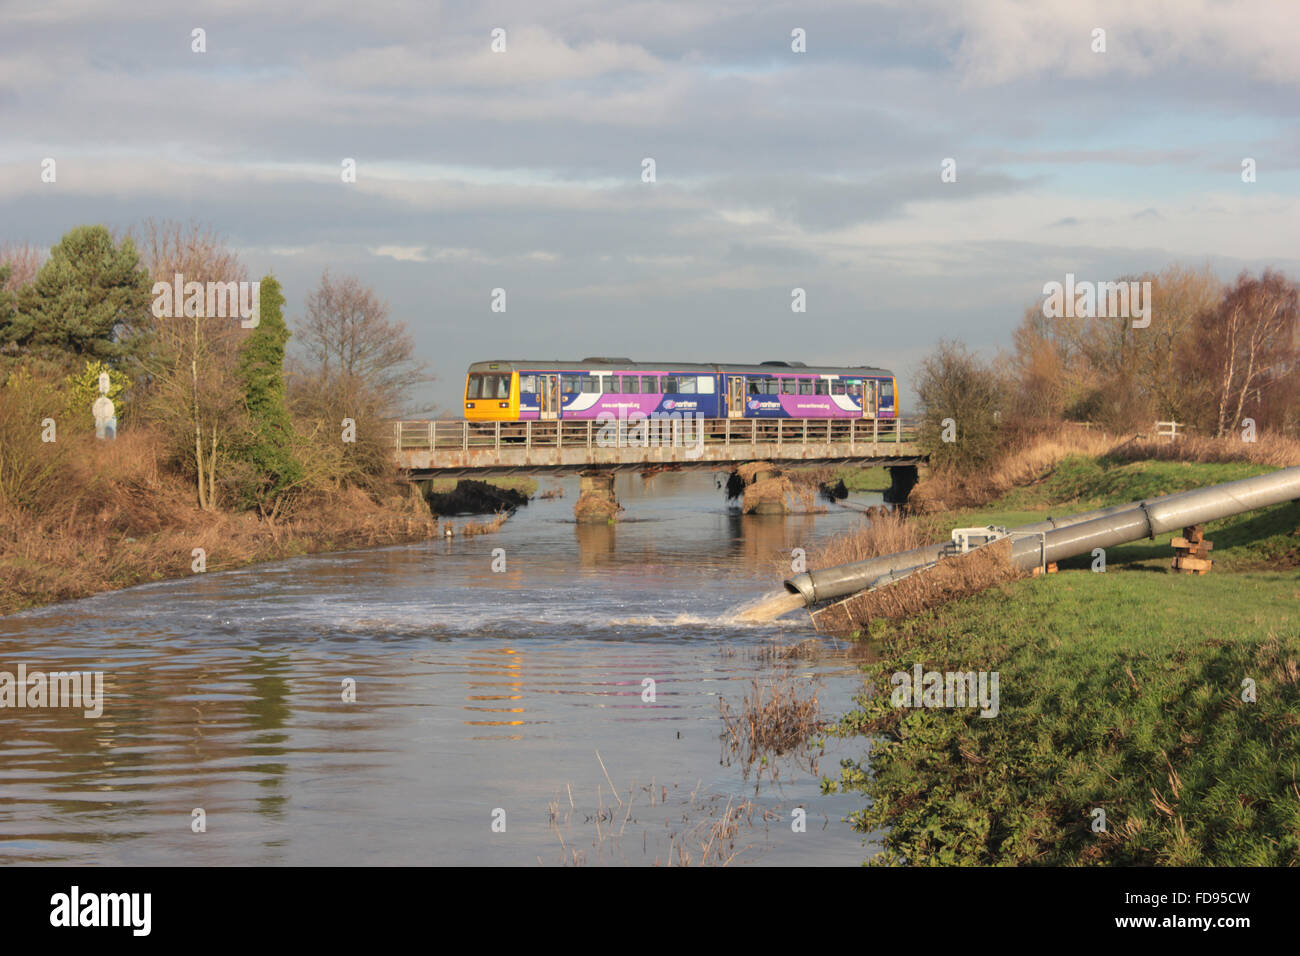 """A Northern train service formed of a """"Pacer"""" train crosses the River Douglas in Rufford - Stock Image"""